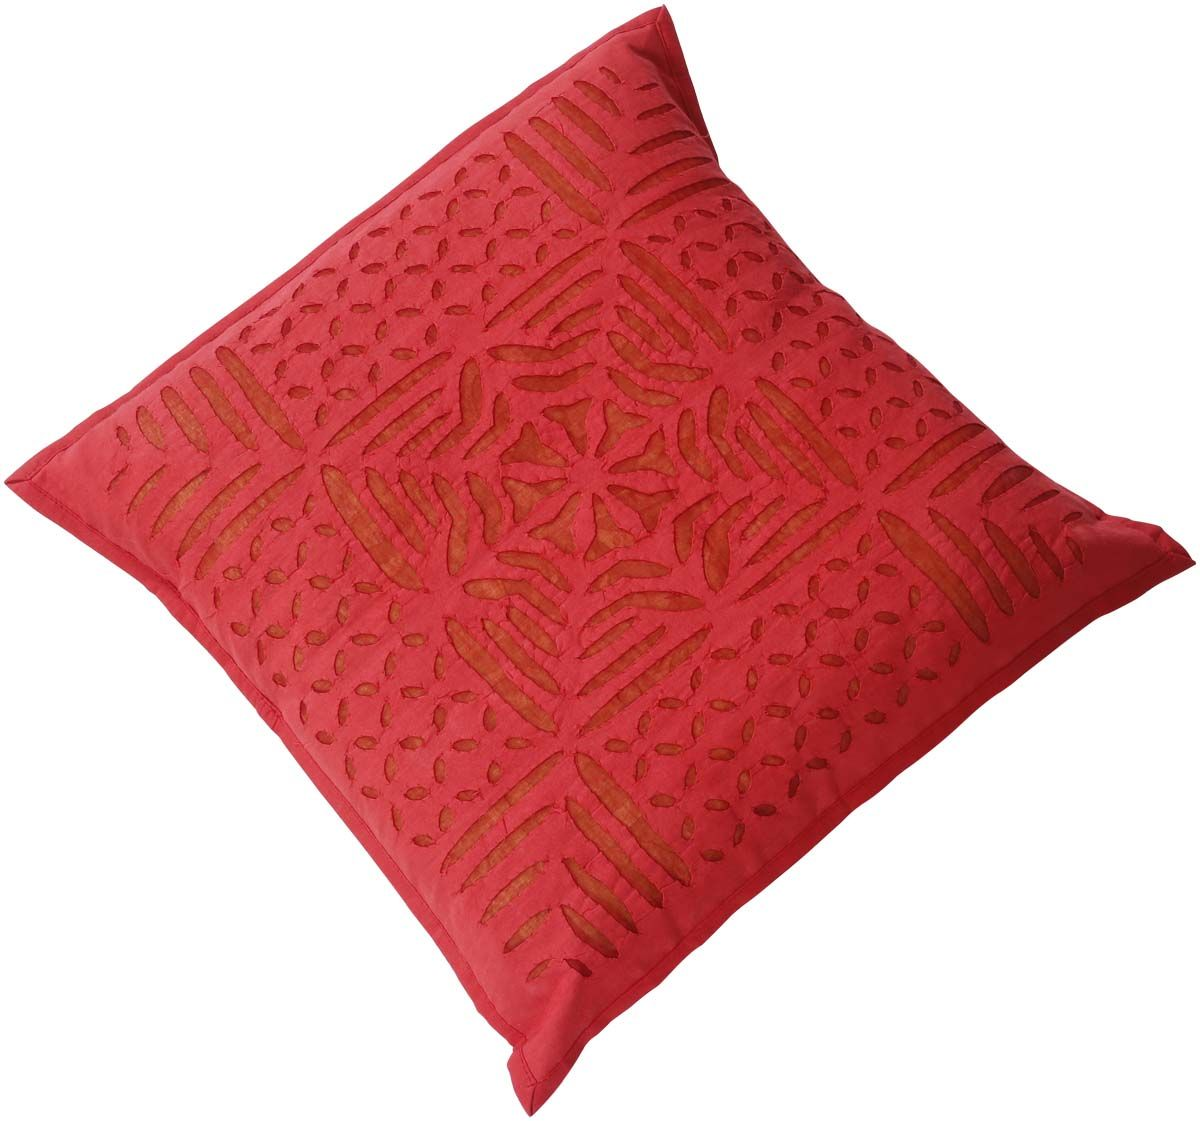 pillow throws amarosa hero top abour wholesale pillows decor cushions shop curtains wall casa online